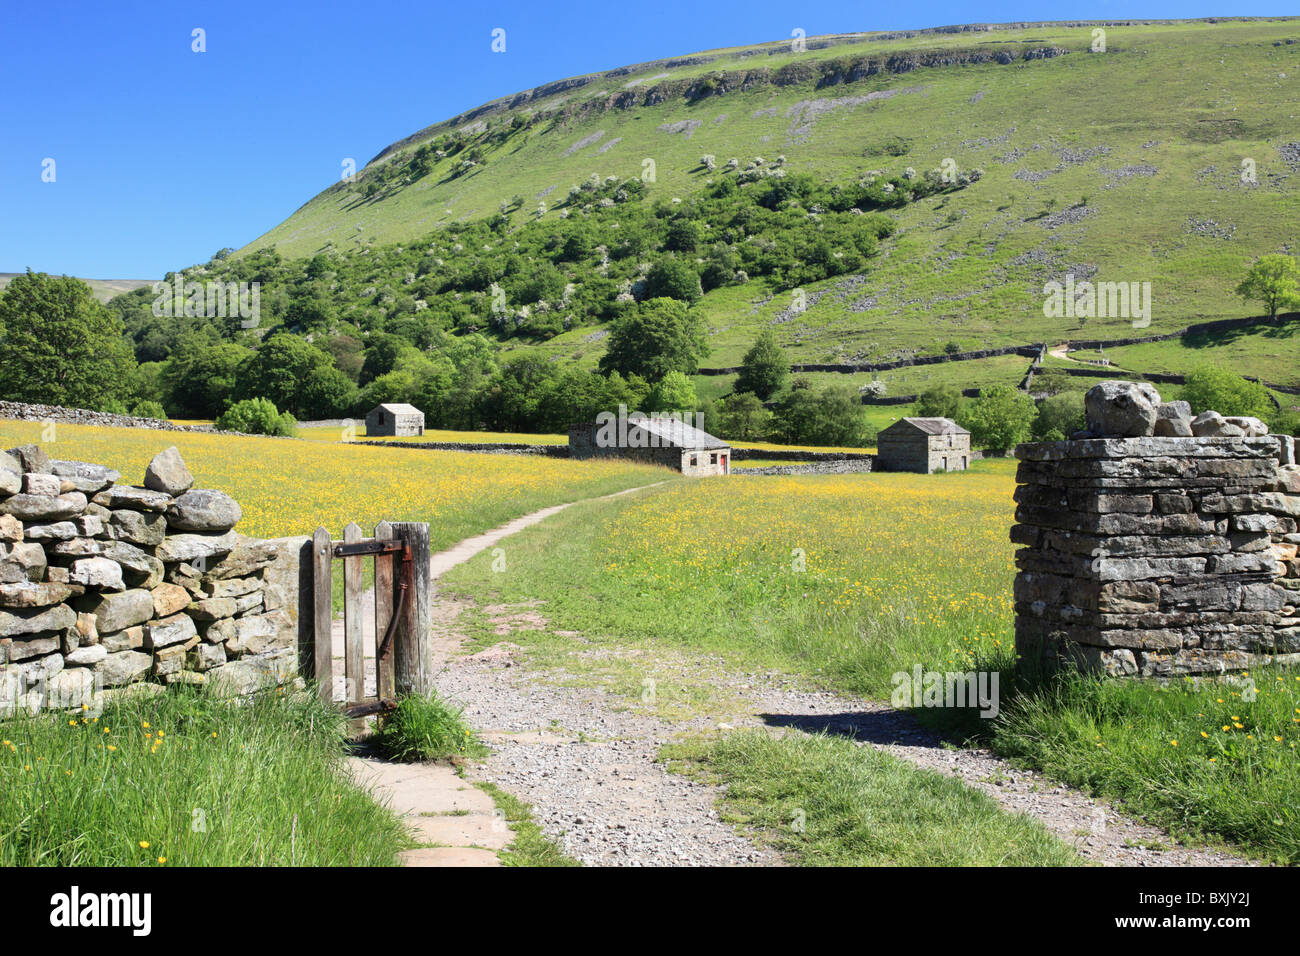 Buttercup Meadows near Muker in the Yorkshire Dales National Park - Stock Image